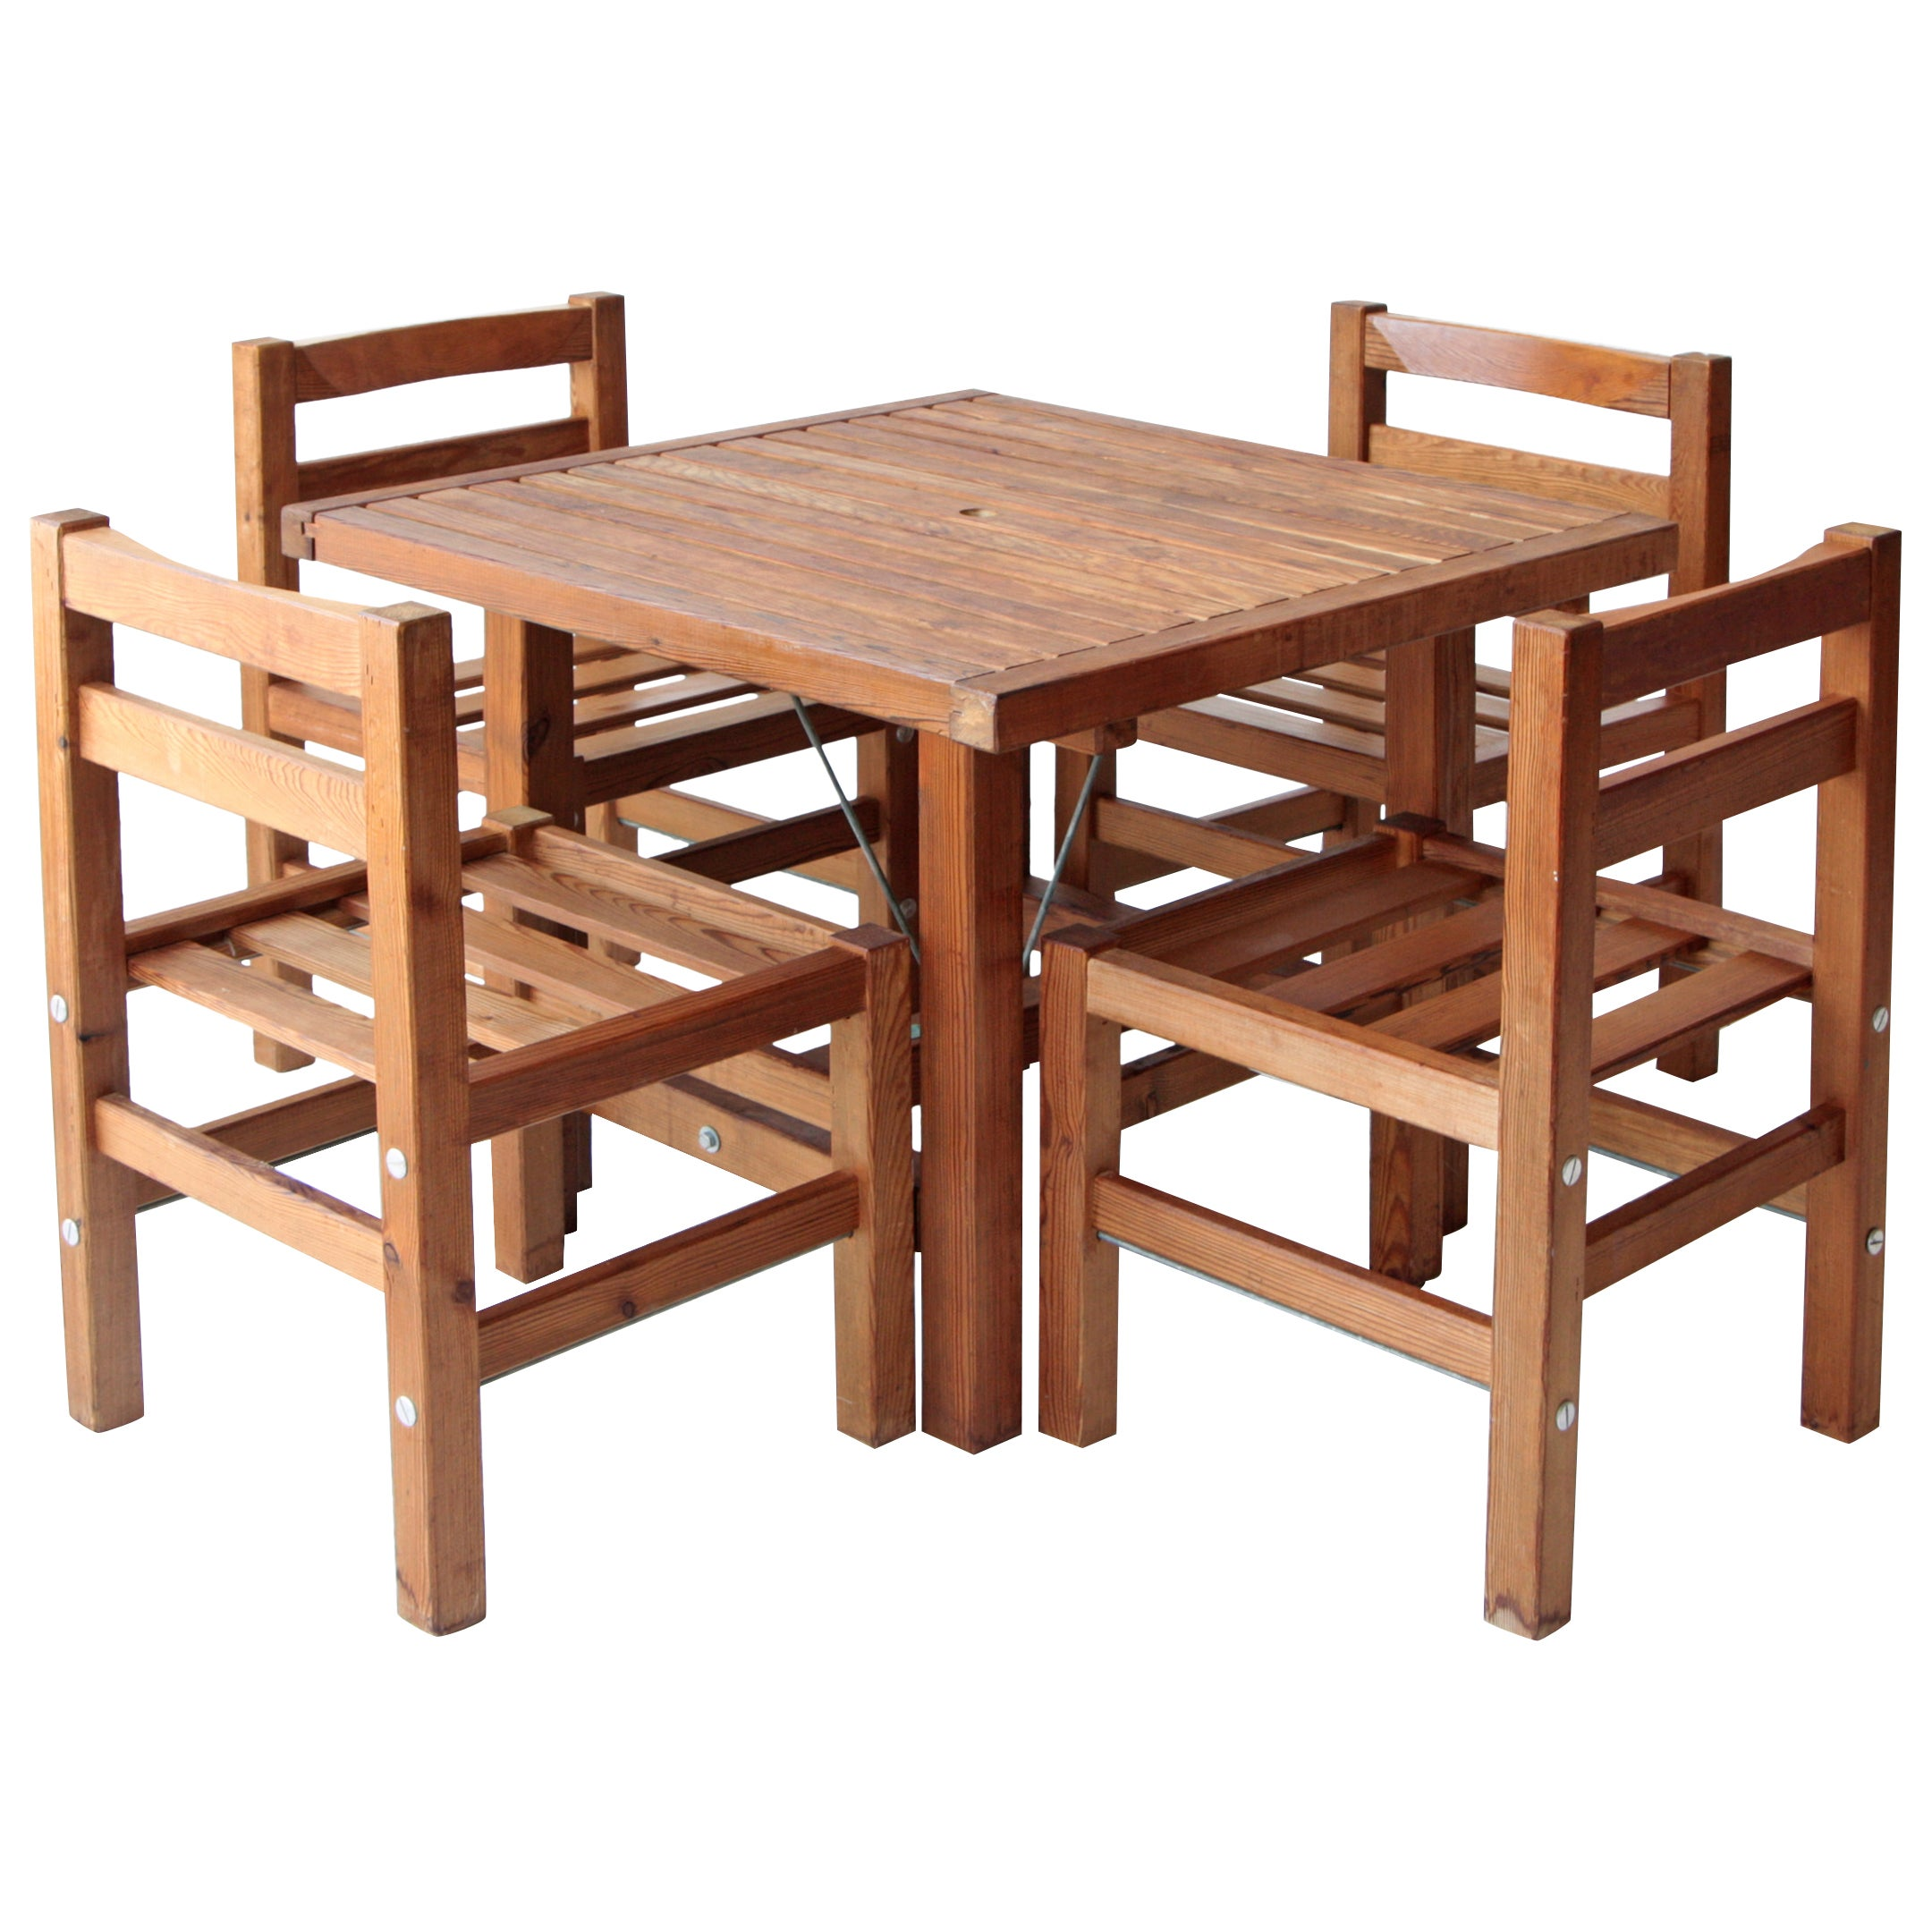 Elsa Stackelberg Redwood Patio Set, Sweden At 1stdibs